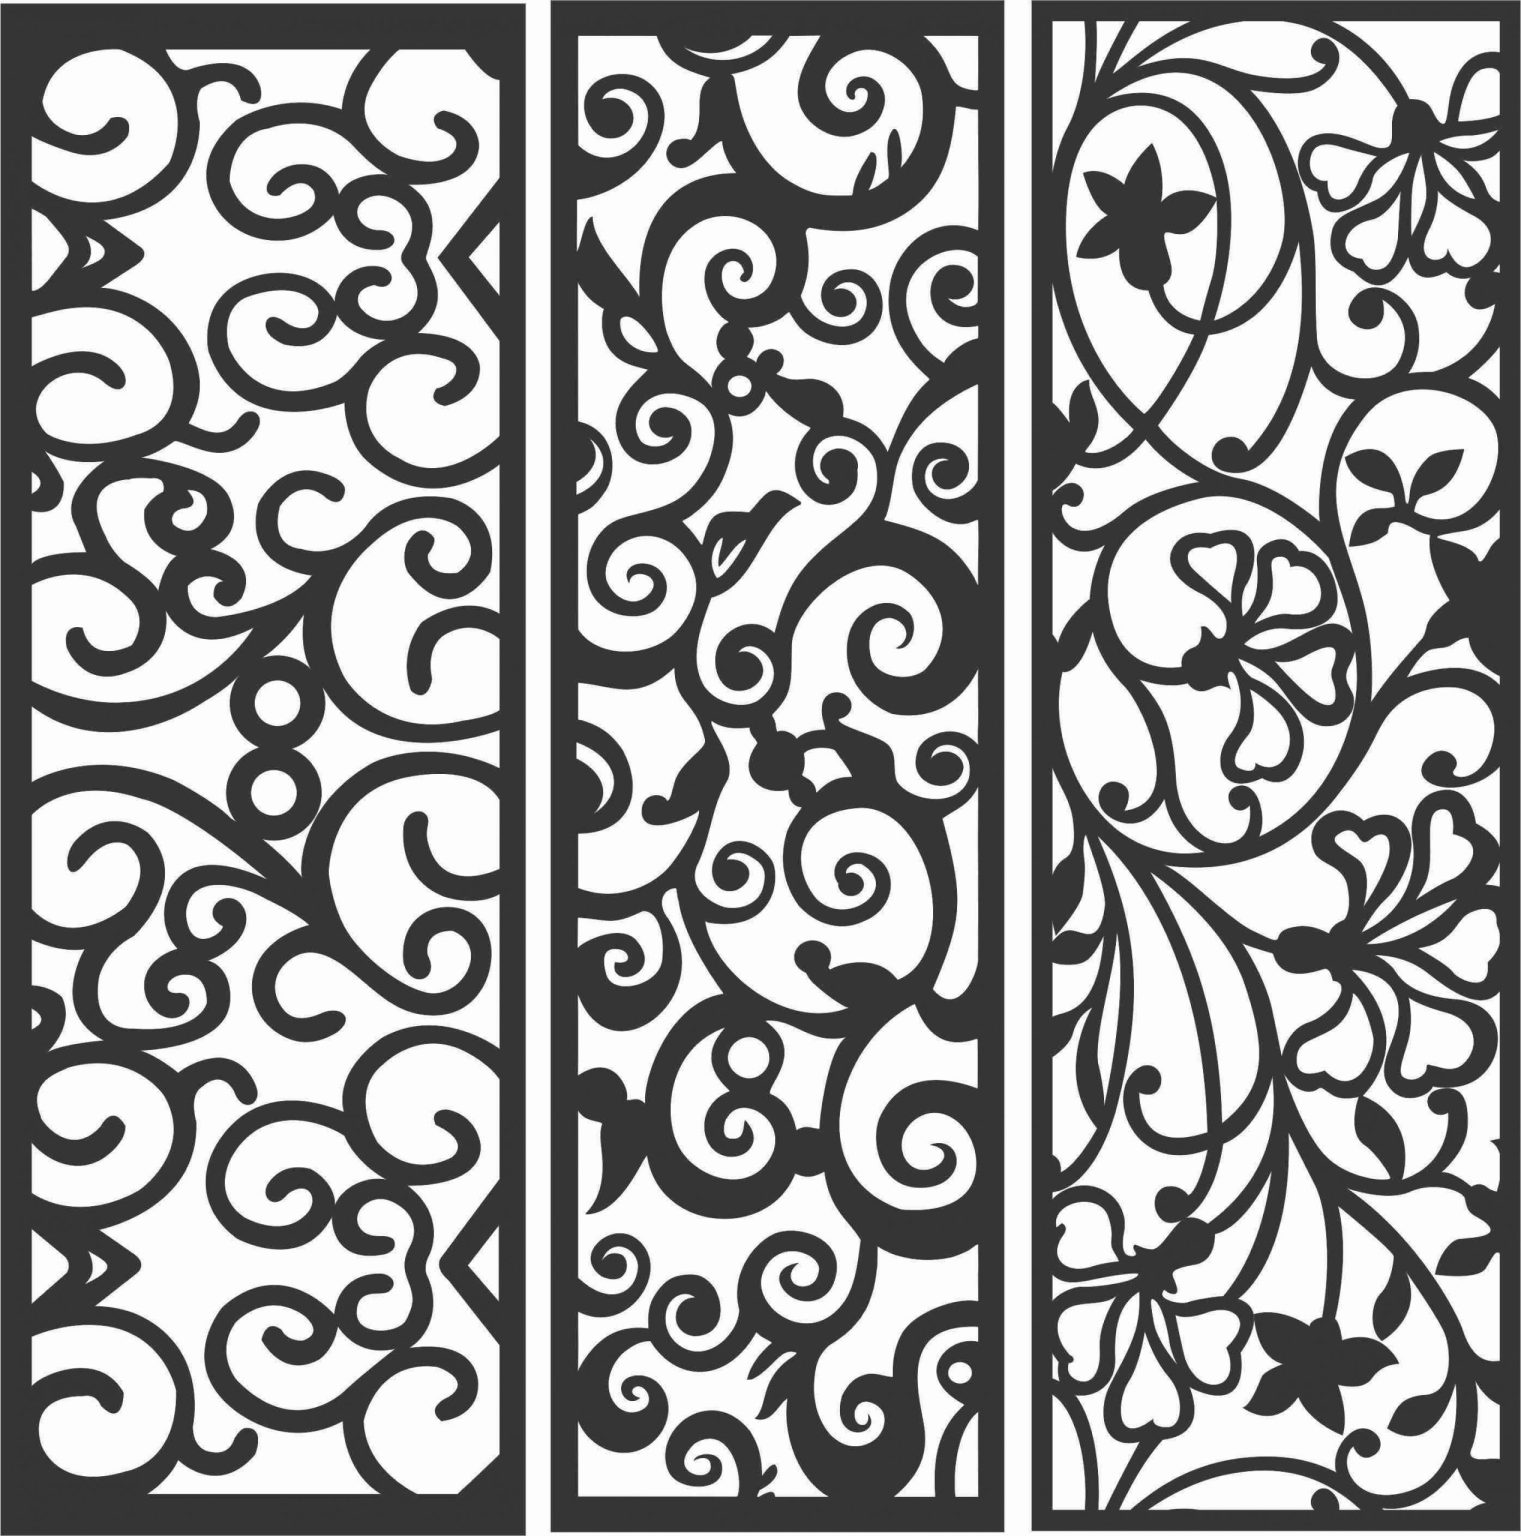 Decorative Screen Patterns For Laser Cutting 89 Free DXF File